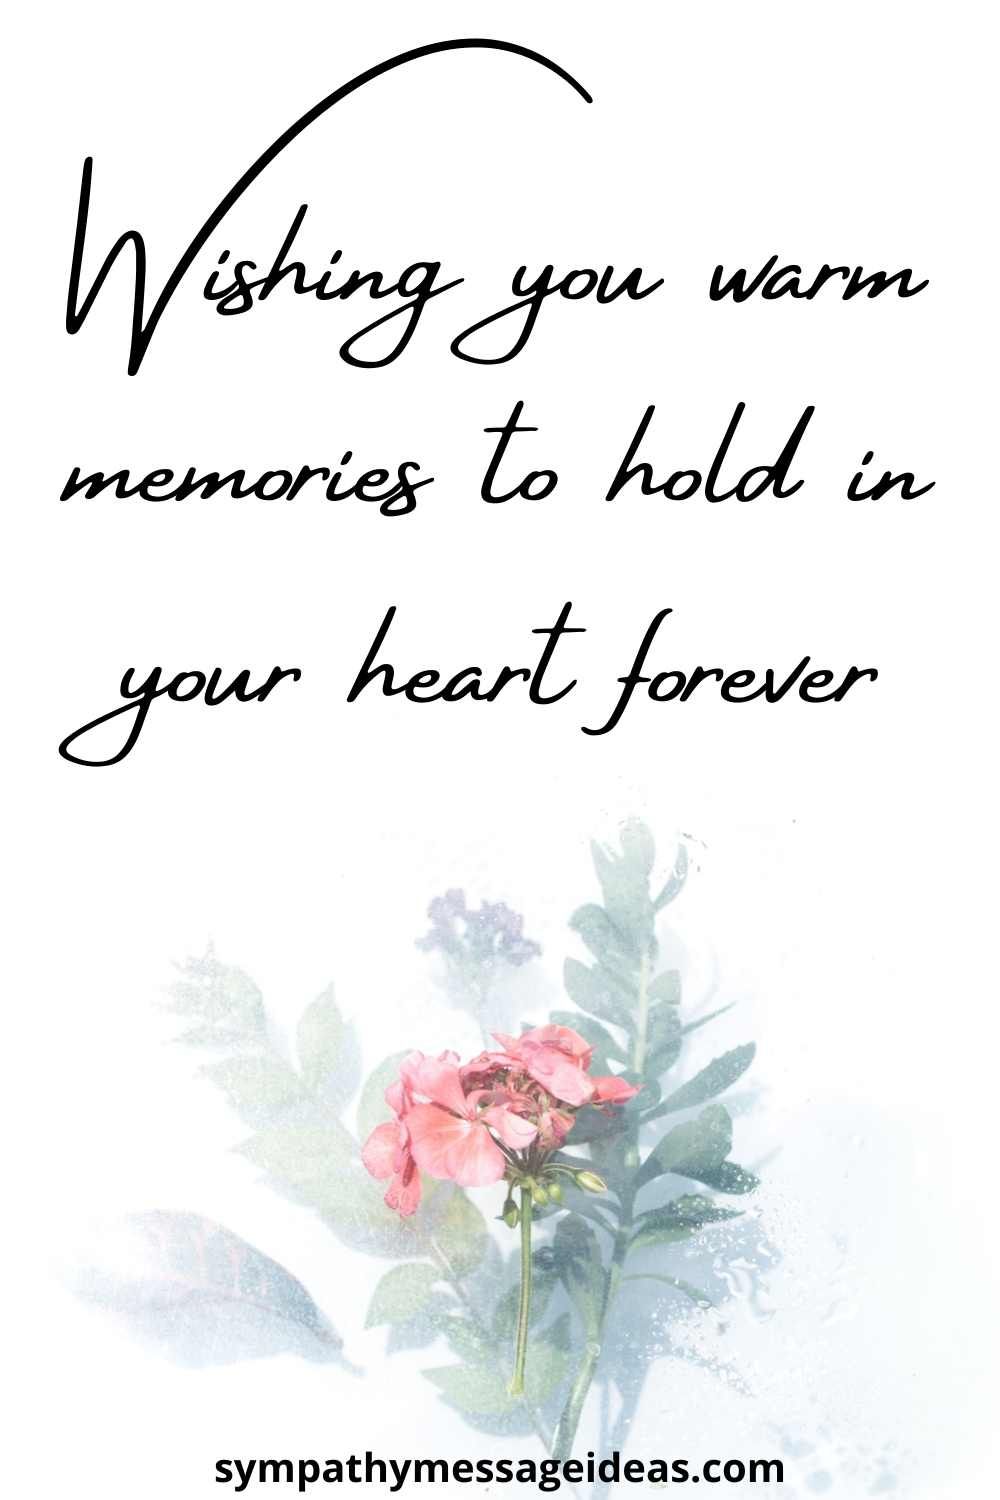 wishing you warm memories to hold in your heart